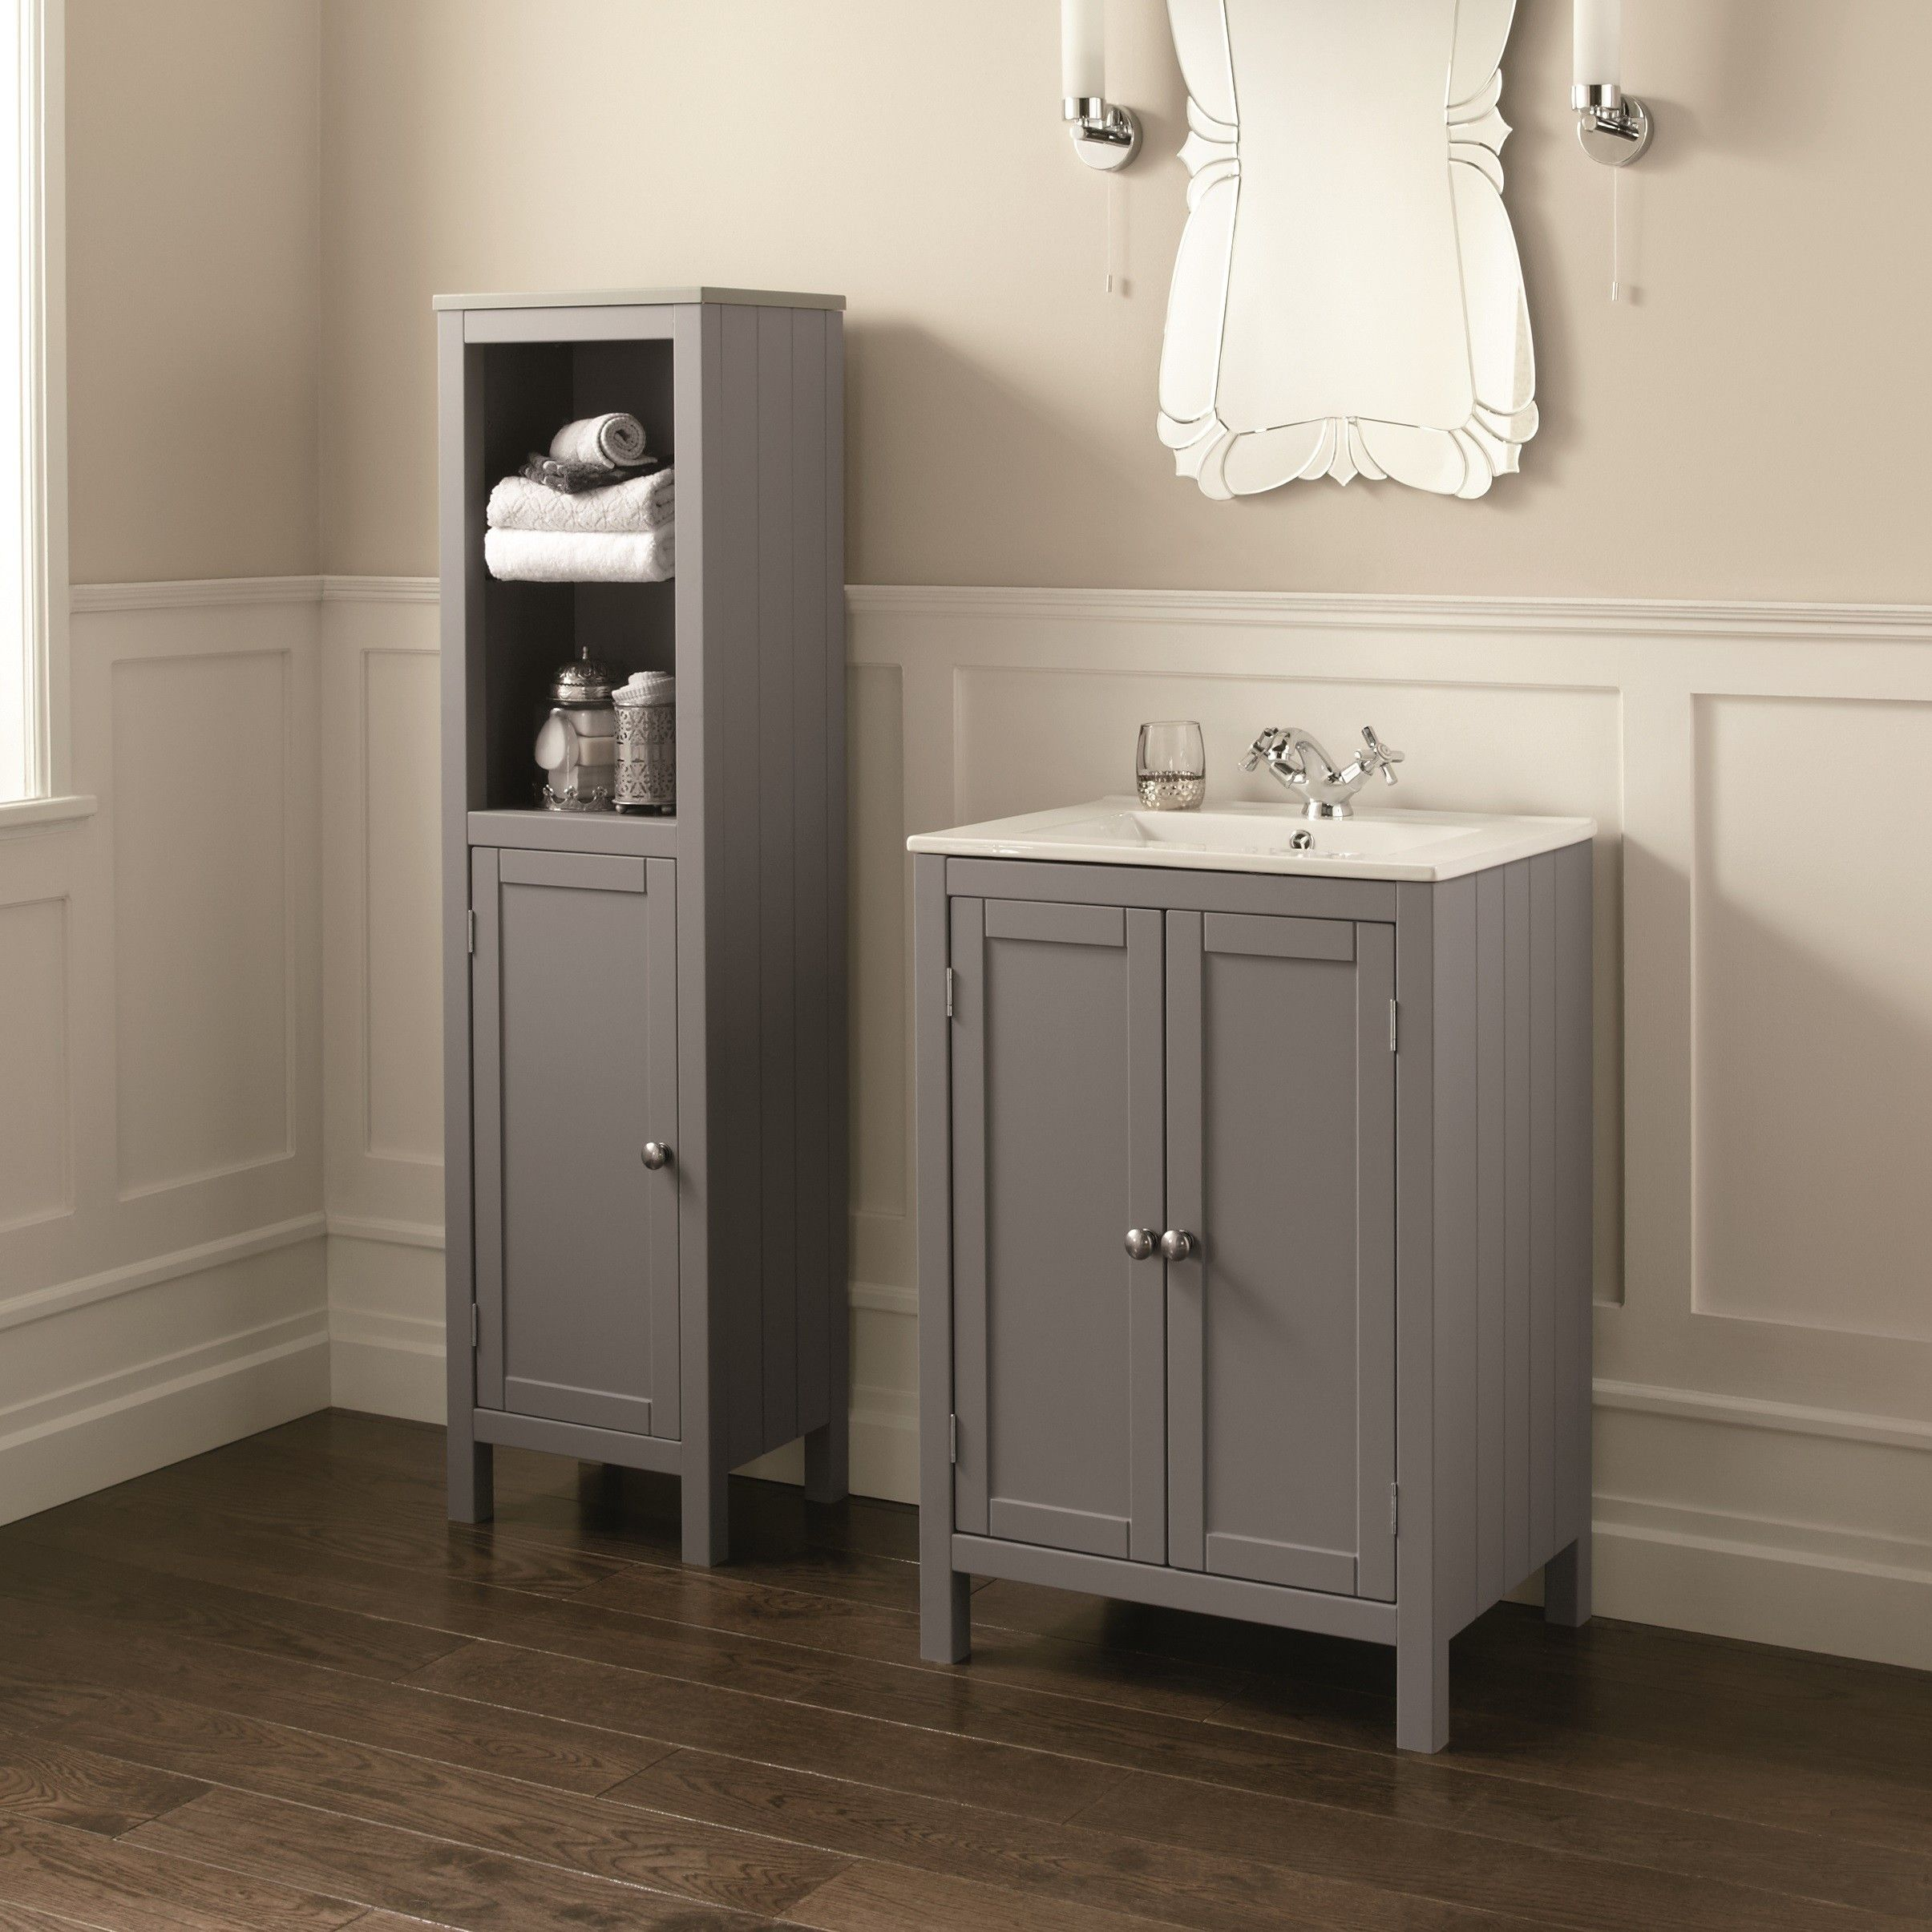 Shaker Style Bathroom Vanity Unit Google Search More